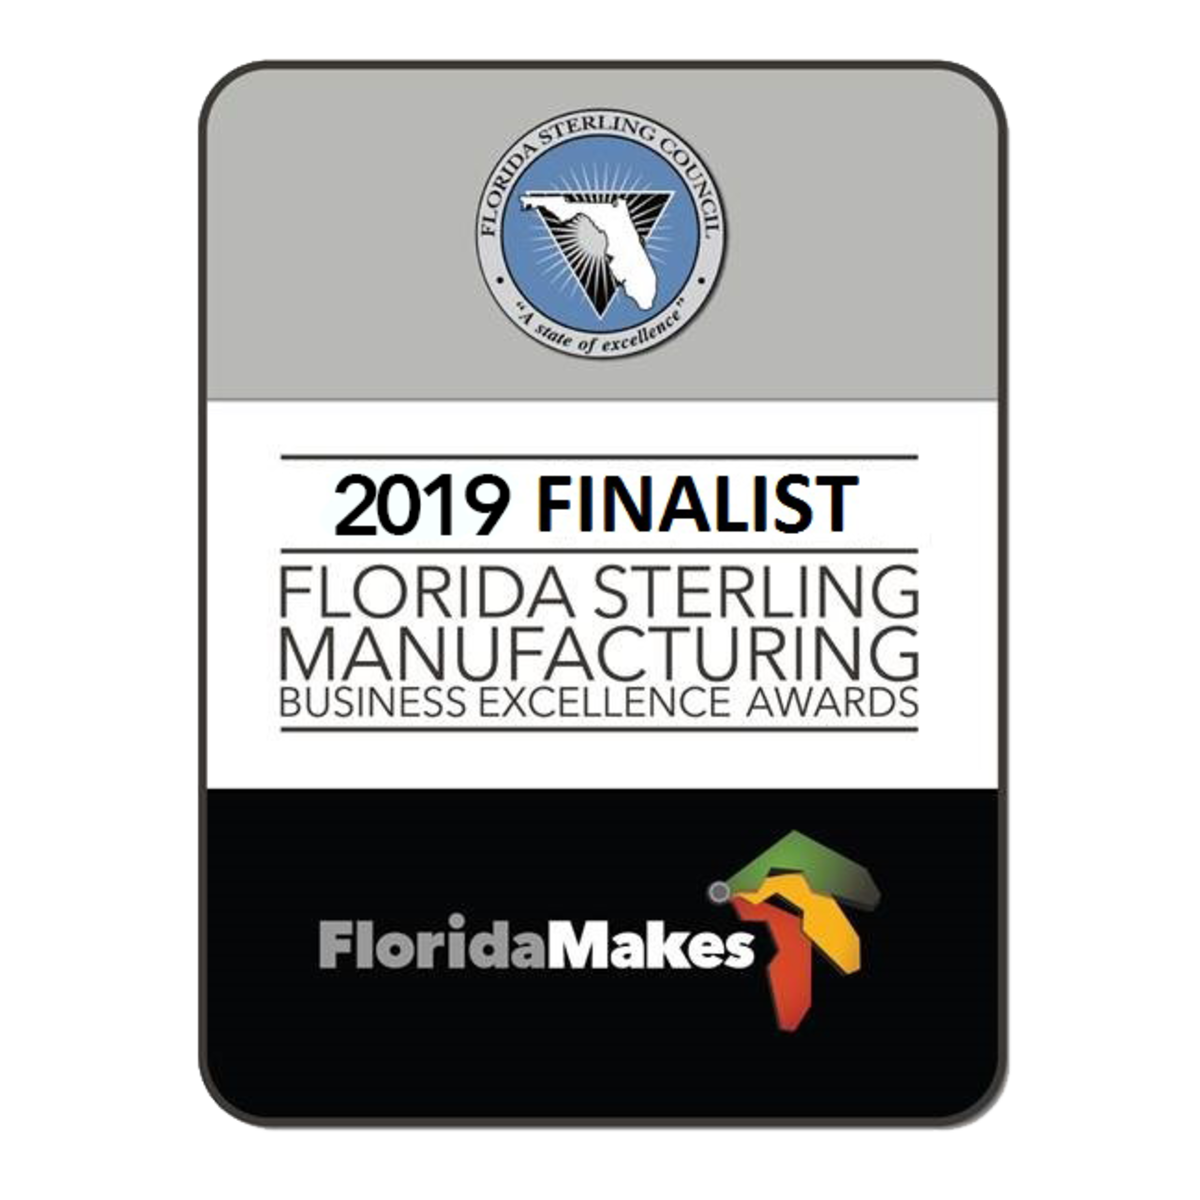 Florida Sterling Manufacturing Business Excellence Awards